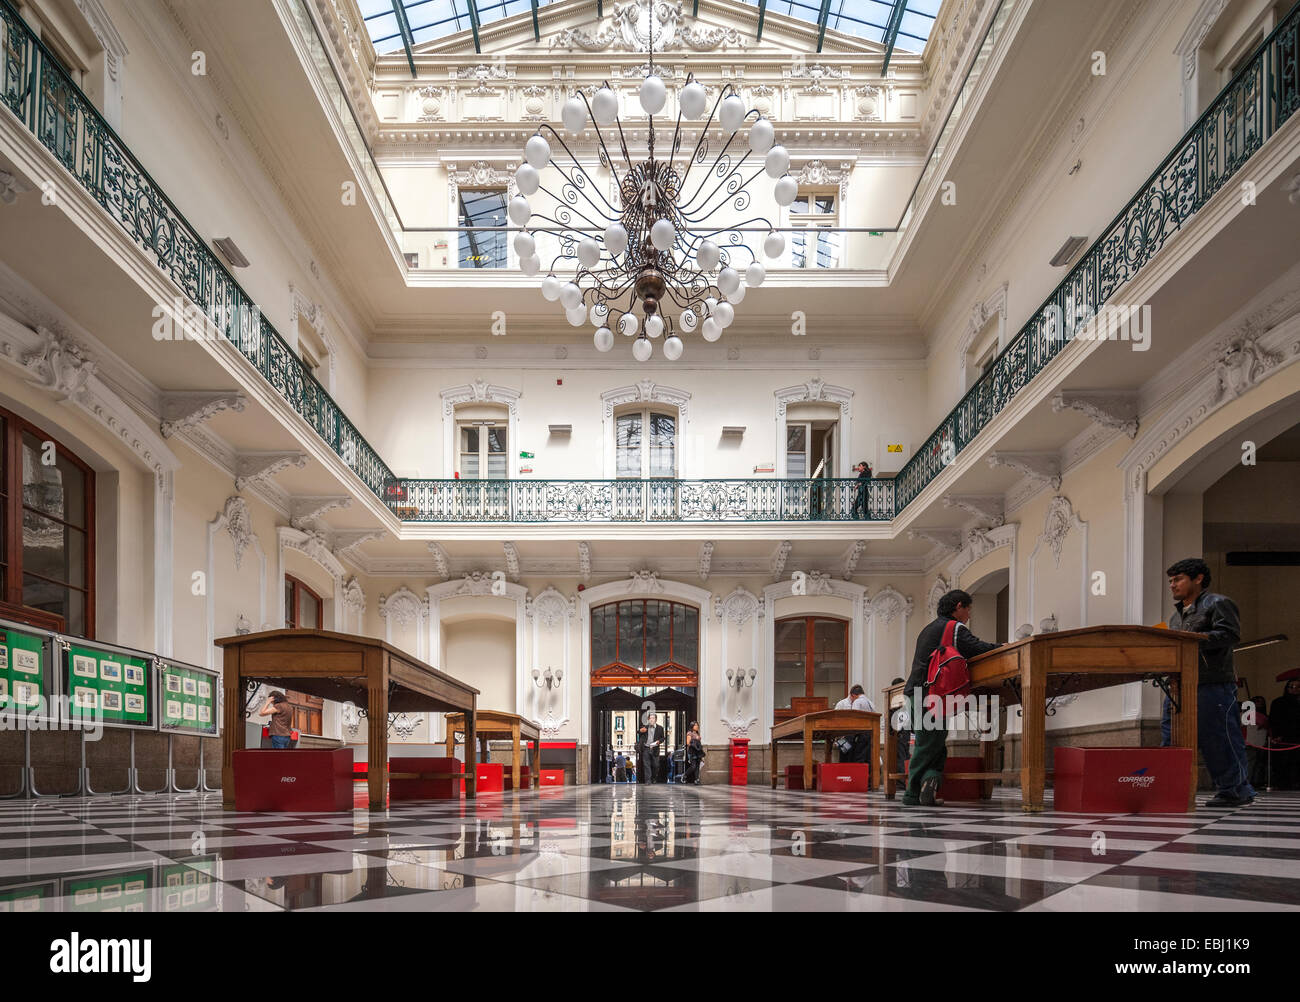 Santiago Chile Central Post Office and Postal Museum Building, Correo Central Museo Postal on Plaza de Armas. Interior. - Stock Image